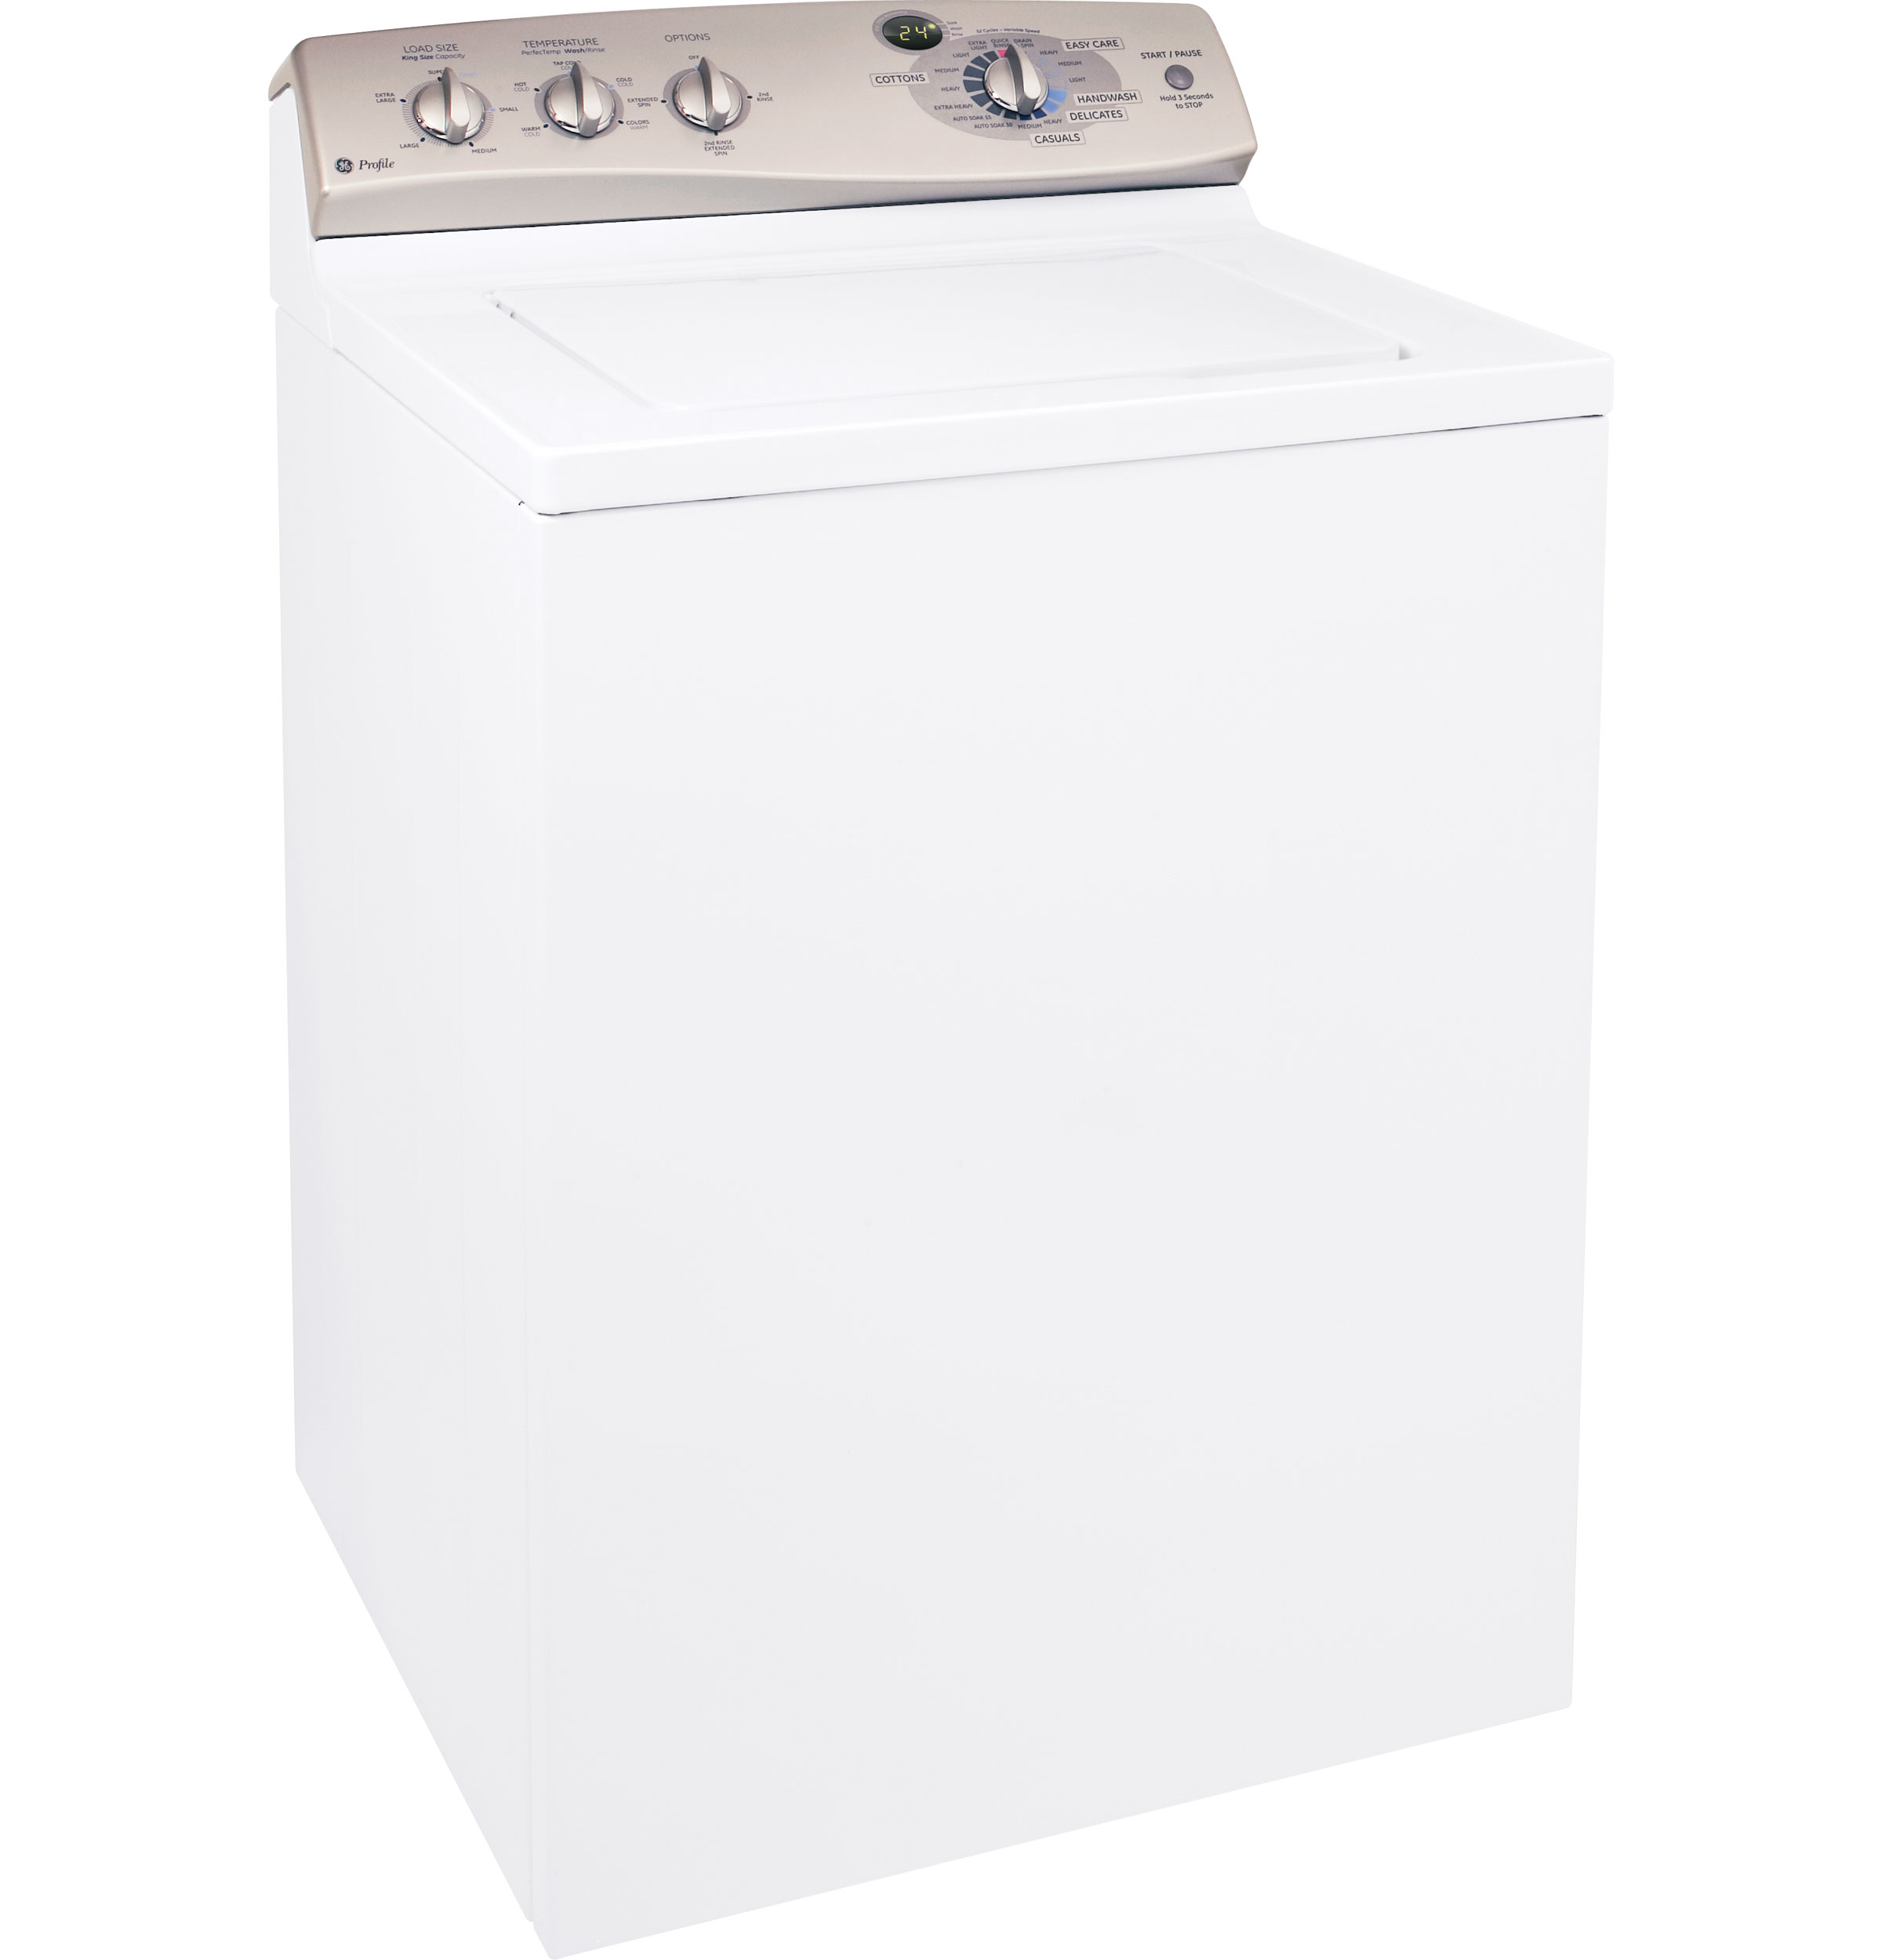 Ge Profile 3 5 Cu Ft King Size Capacity Stainless Steel